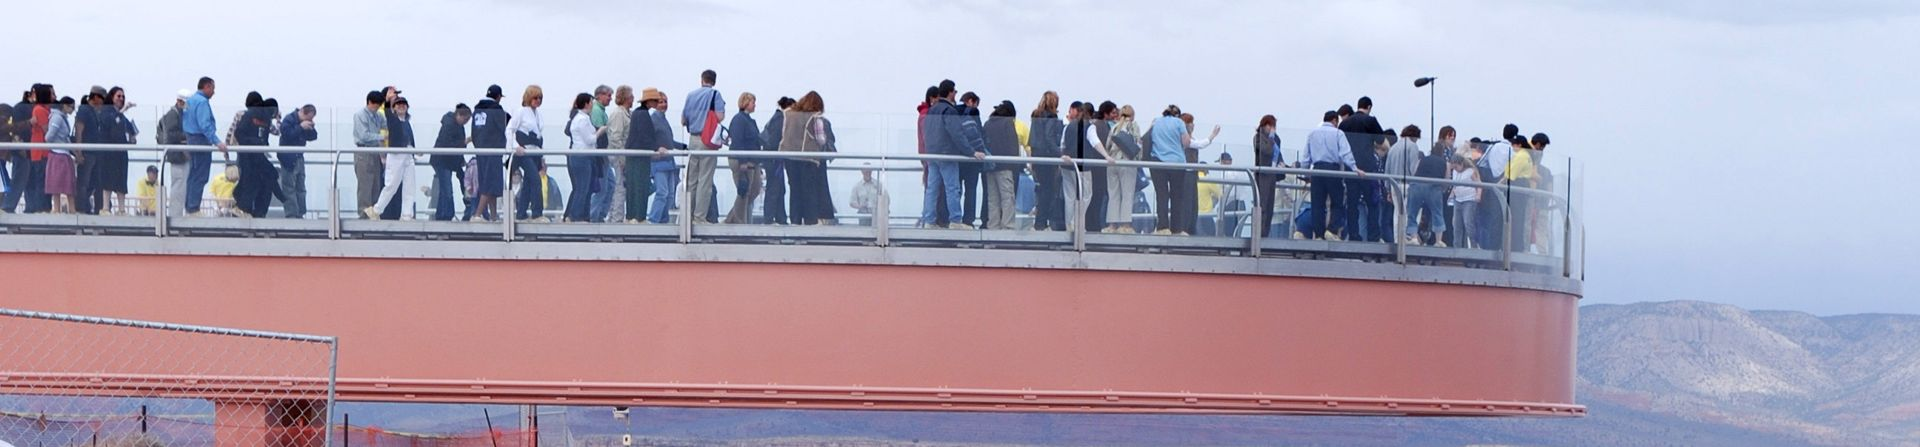 Visitors on a Grand Canyon Skywalk bus tour from Las Vegas stand atop the Skywalk Bridge to gaze at the canyon scenery.